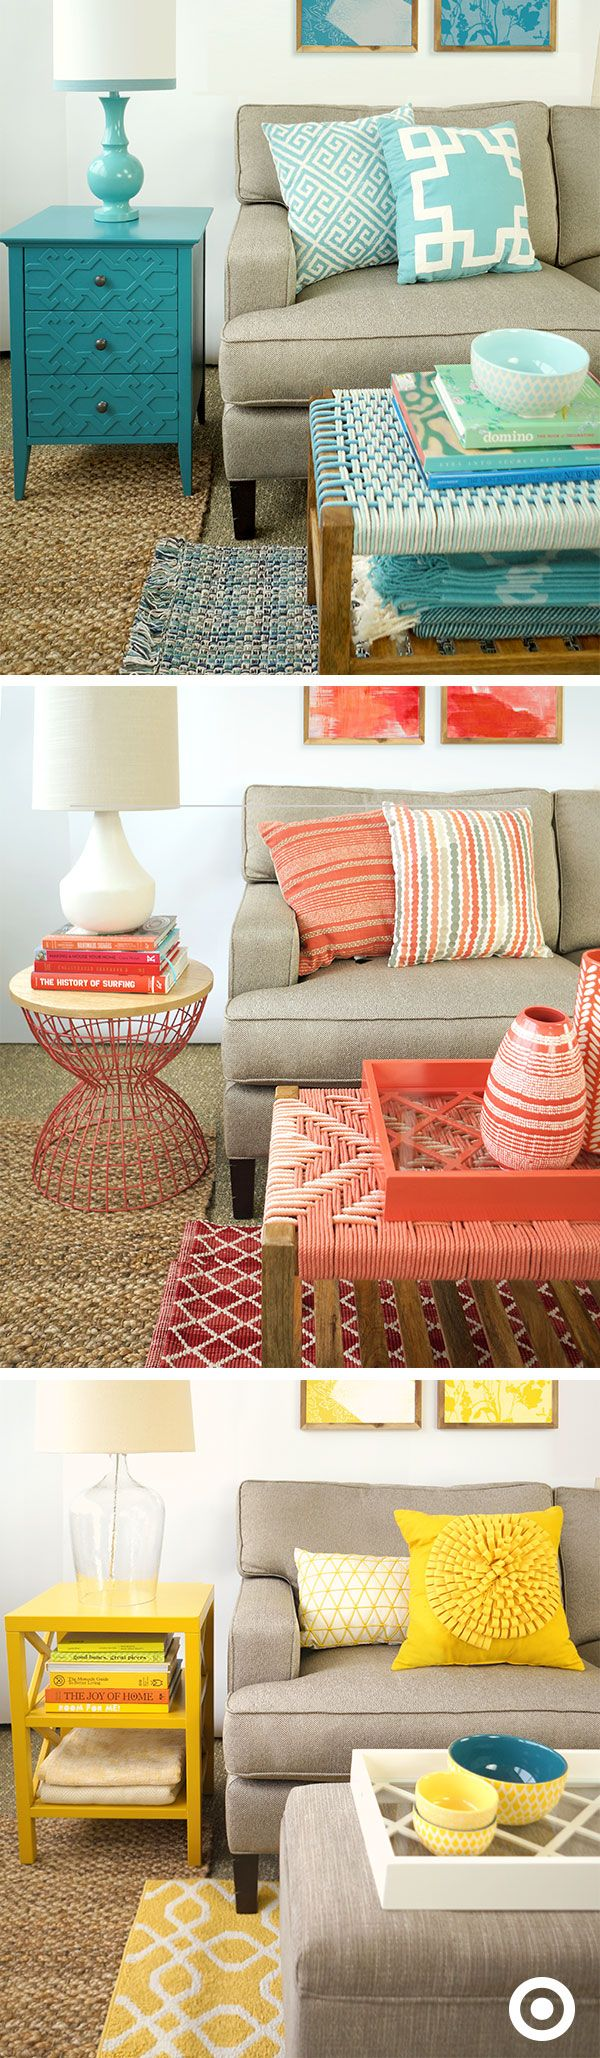 No need for an expensive room makeover. All you need is a little color infusion! Add pops of color into your space using accent pieces in coral, yellow and teal.